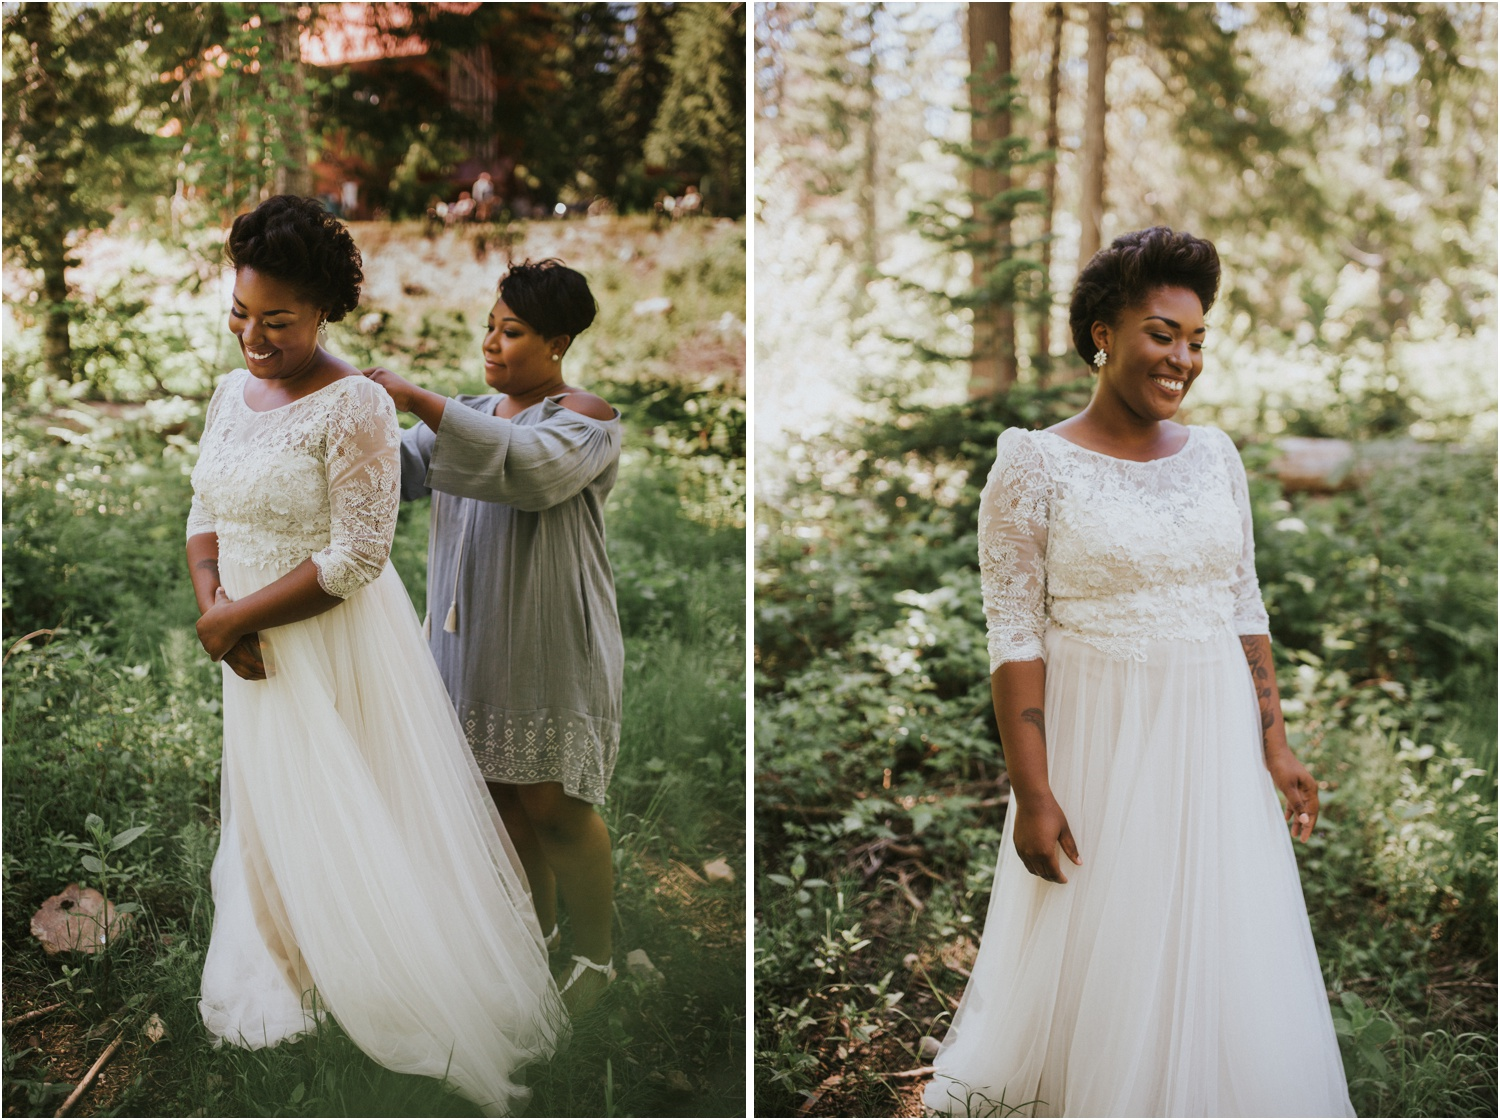 lovestoriesco-amber-phinisee-seattle-mount-rainier-elopement_0023.jpg